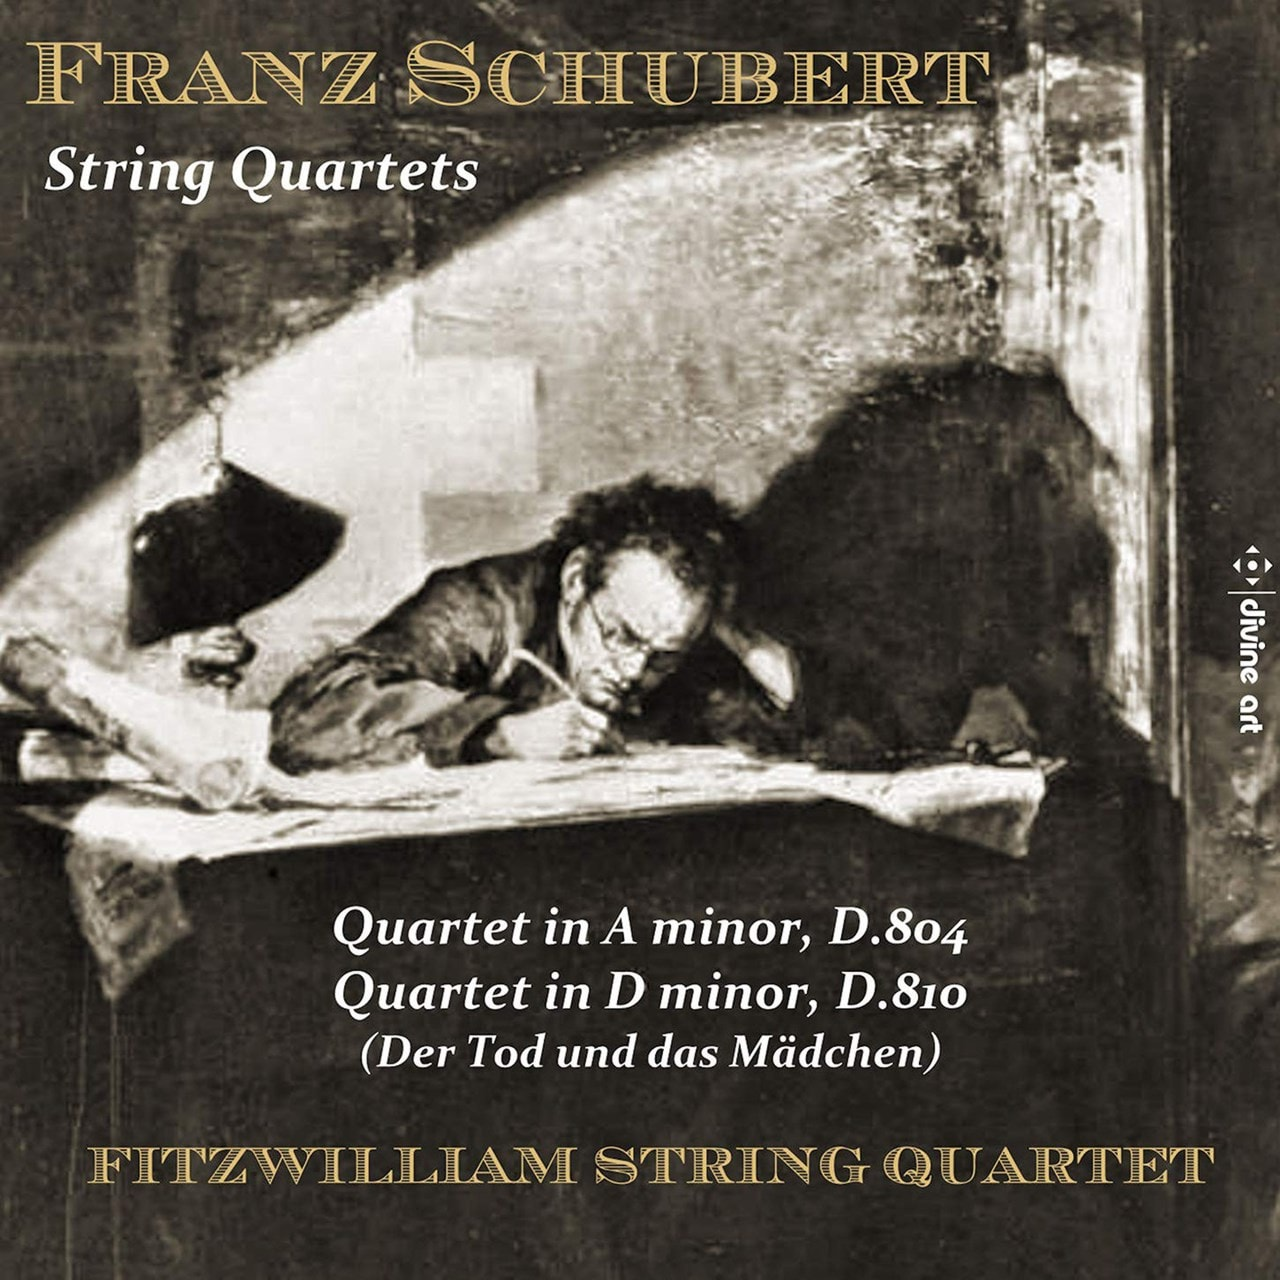 Franz Schubert: String Quartets - 1